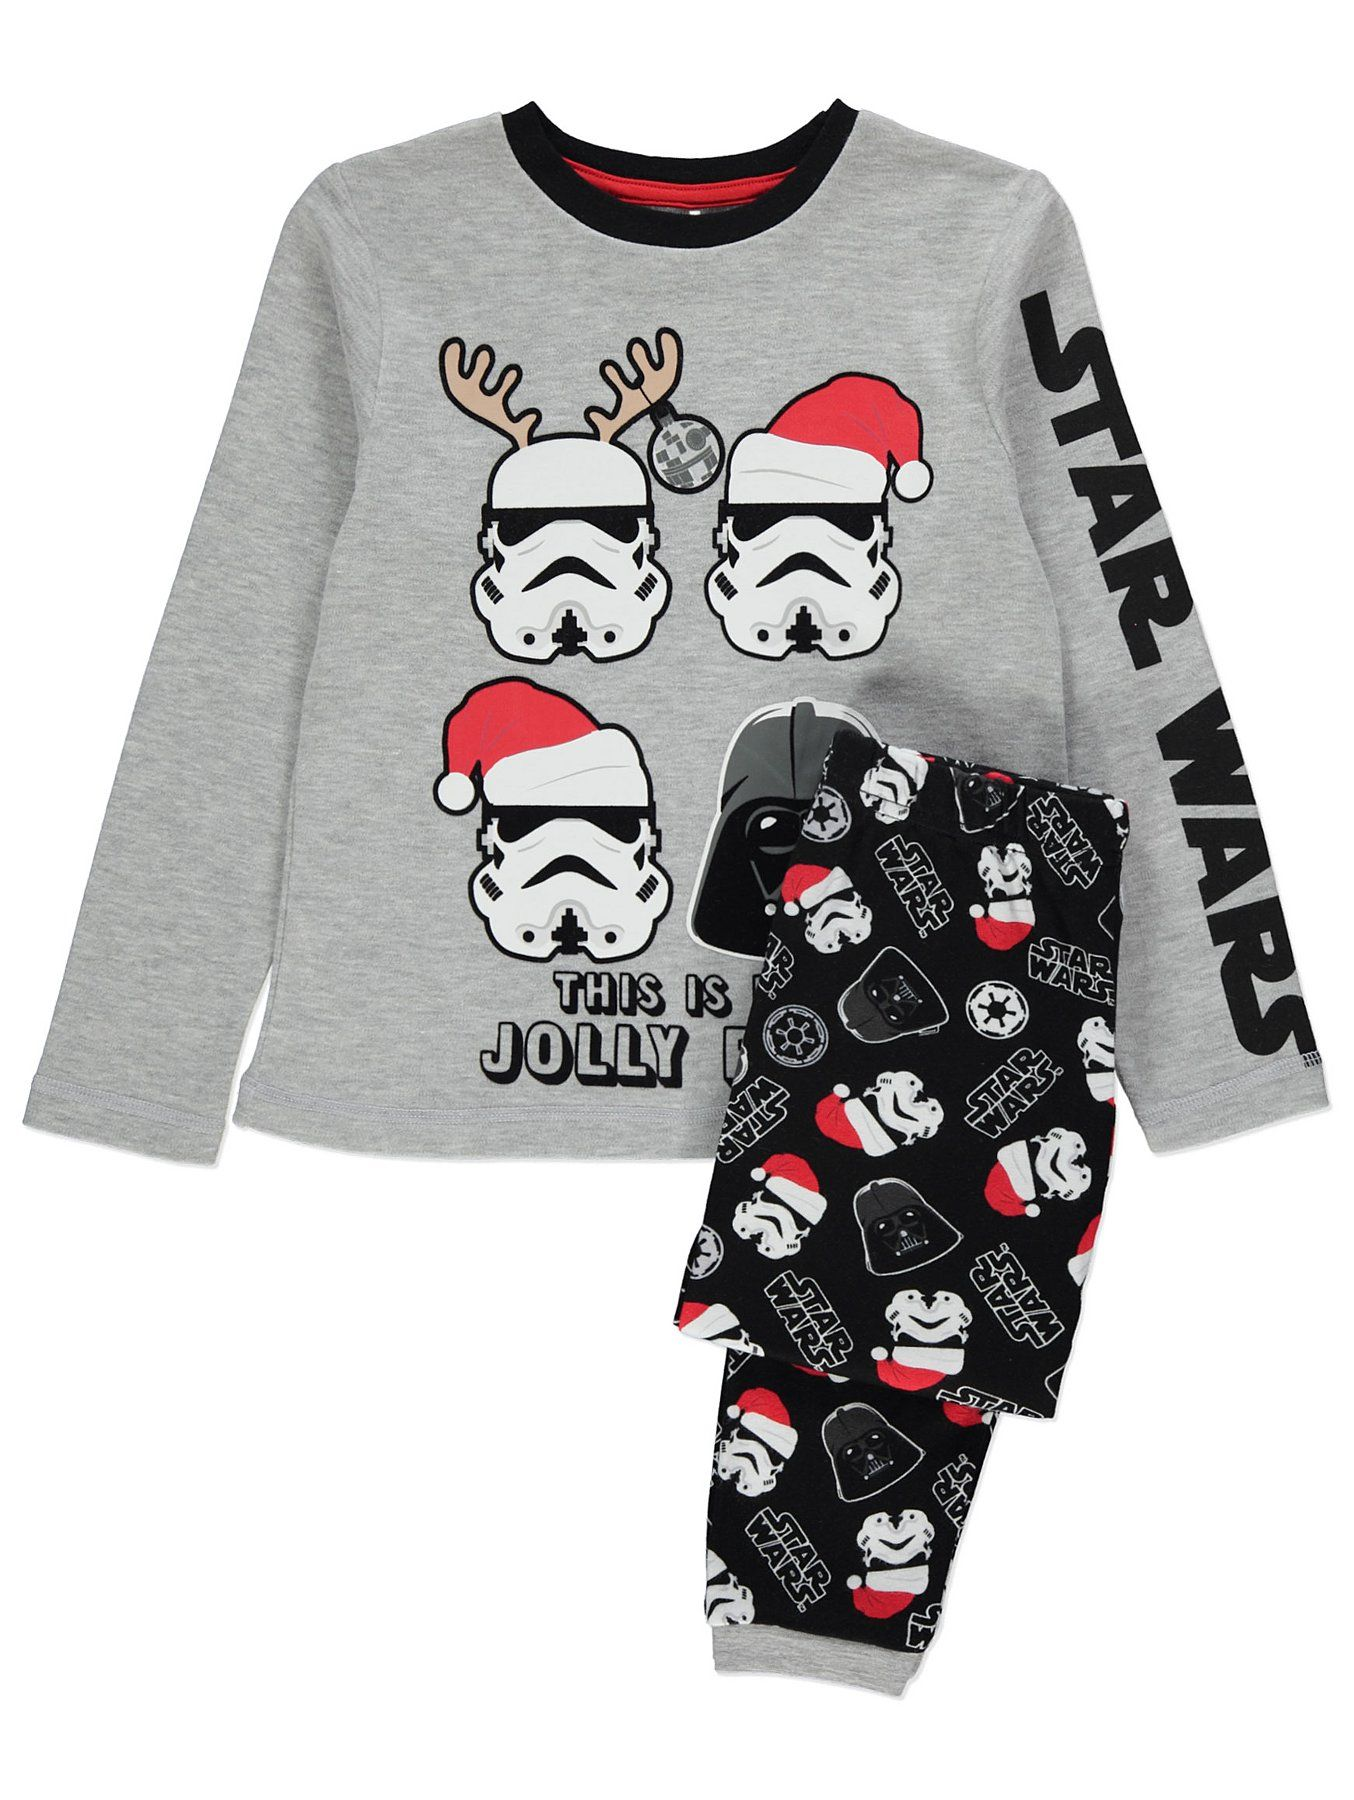 Star Wars Grey Christmas Pyjamas Kids